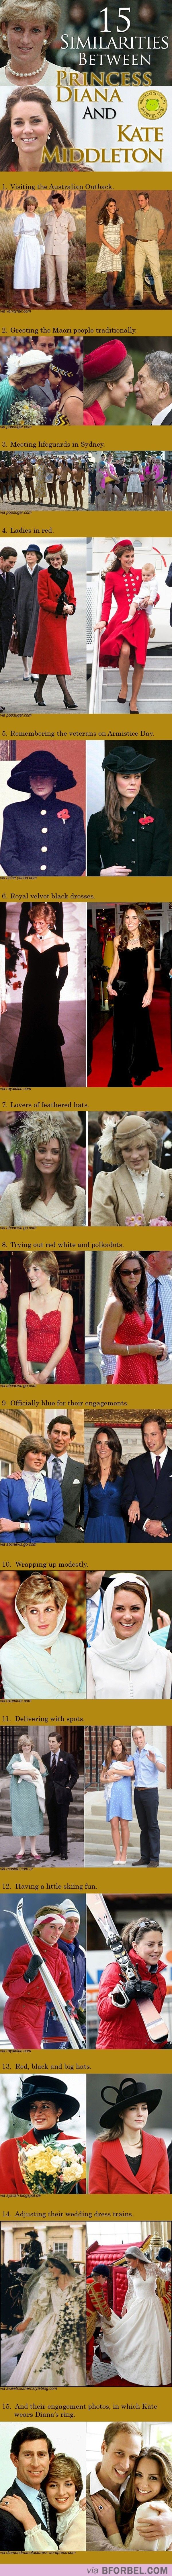 15 Similarities Between Princess Diana And Kate Middleton…